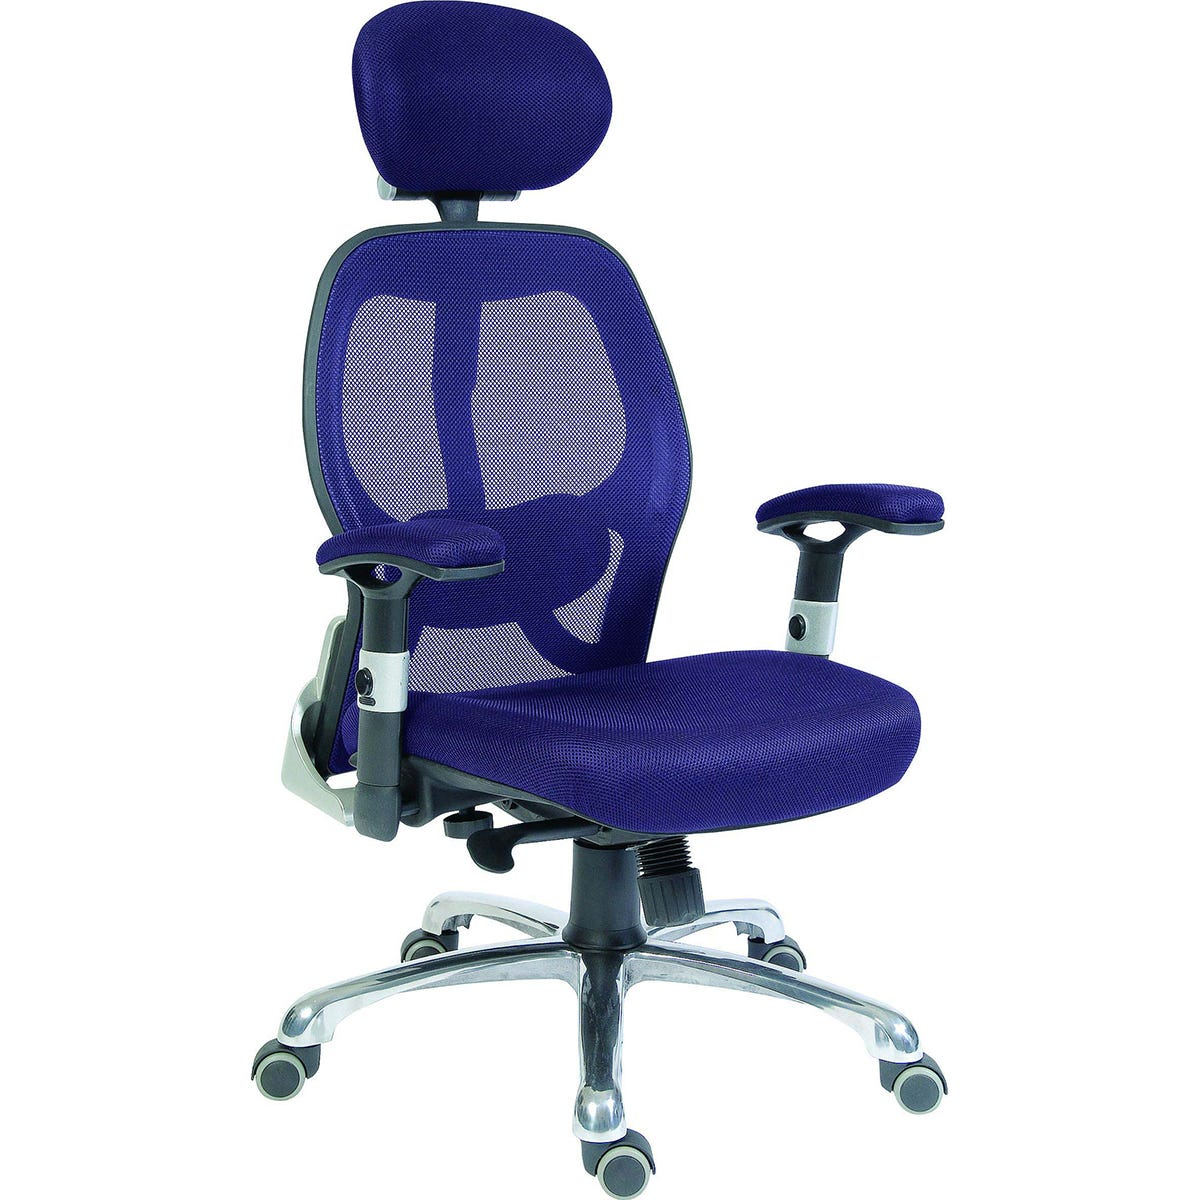 Teknik Cobham Luxury Mesh Back Executive Office Chair with Lumbar Support - Blue